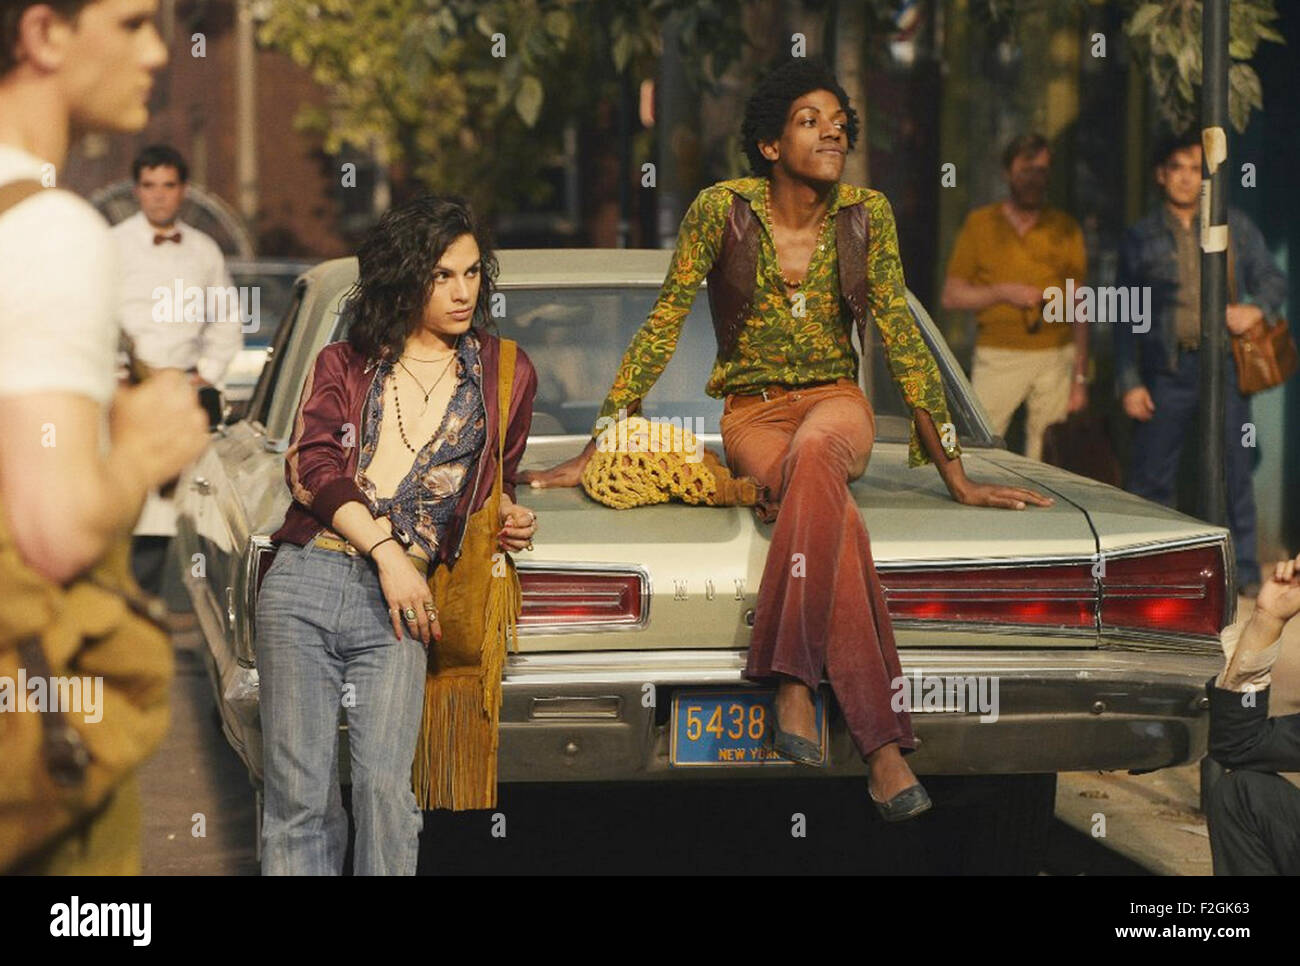 STONEWALL 2015 Roadside Attractions film with Jonny Beauchanp at left and Vladimir Alexis - Stock Image